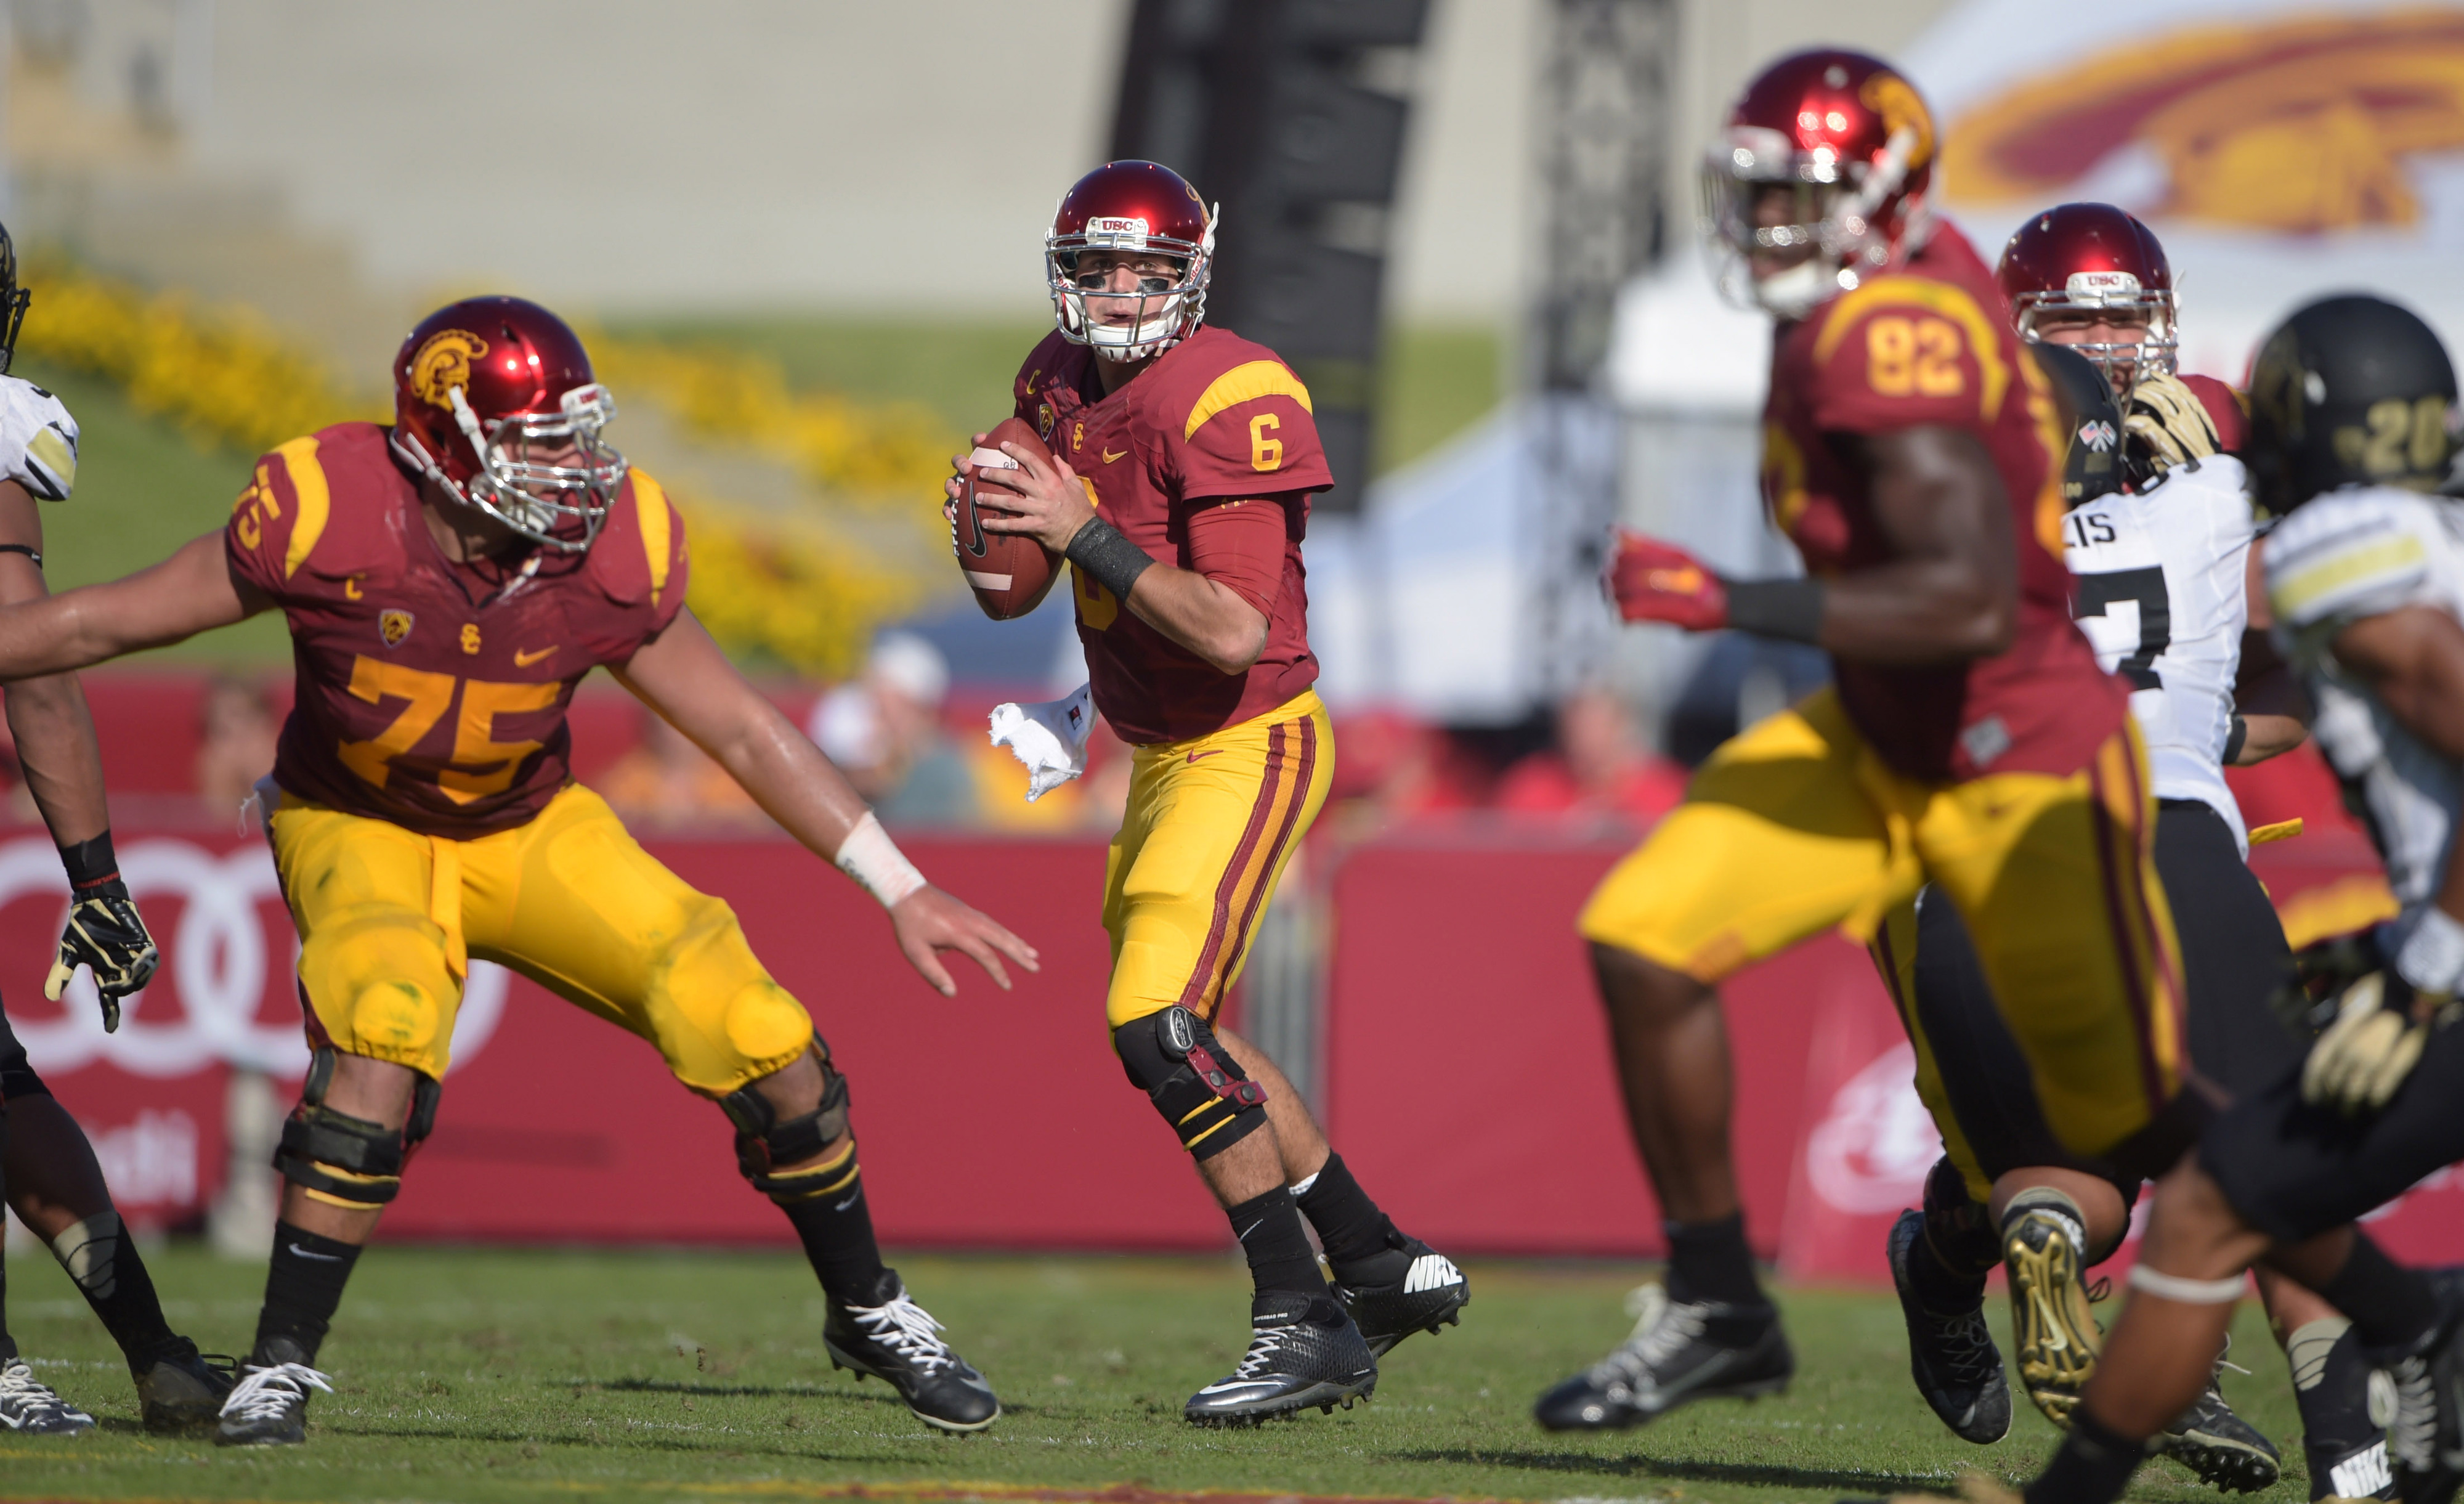 Junior quarterback Cody Kessler leads No. 20 USC into Rice-Eccles Stadium tonight to take on the No. 19-ranked Utah Utes in a Pac-12 South showdown.